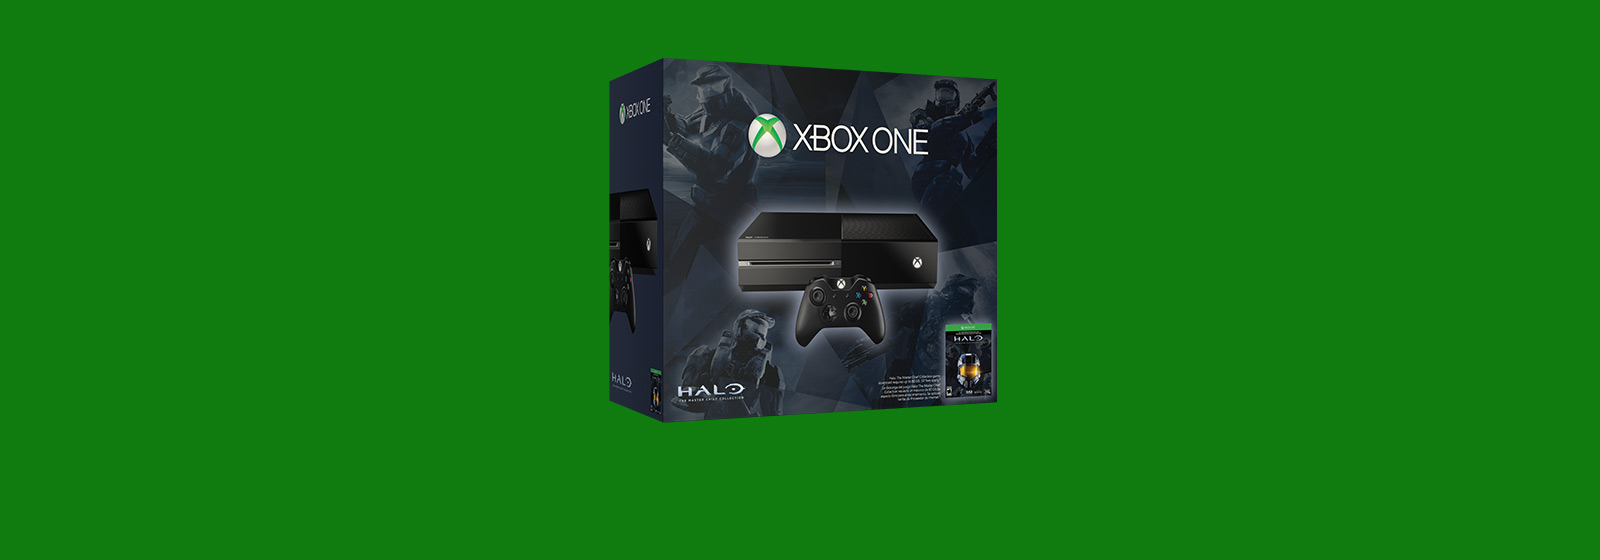 4 Halo games. 1 bundle. Starts at $349 (while supplies last).